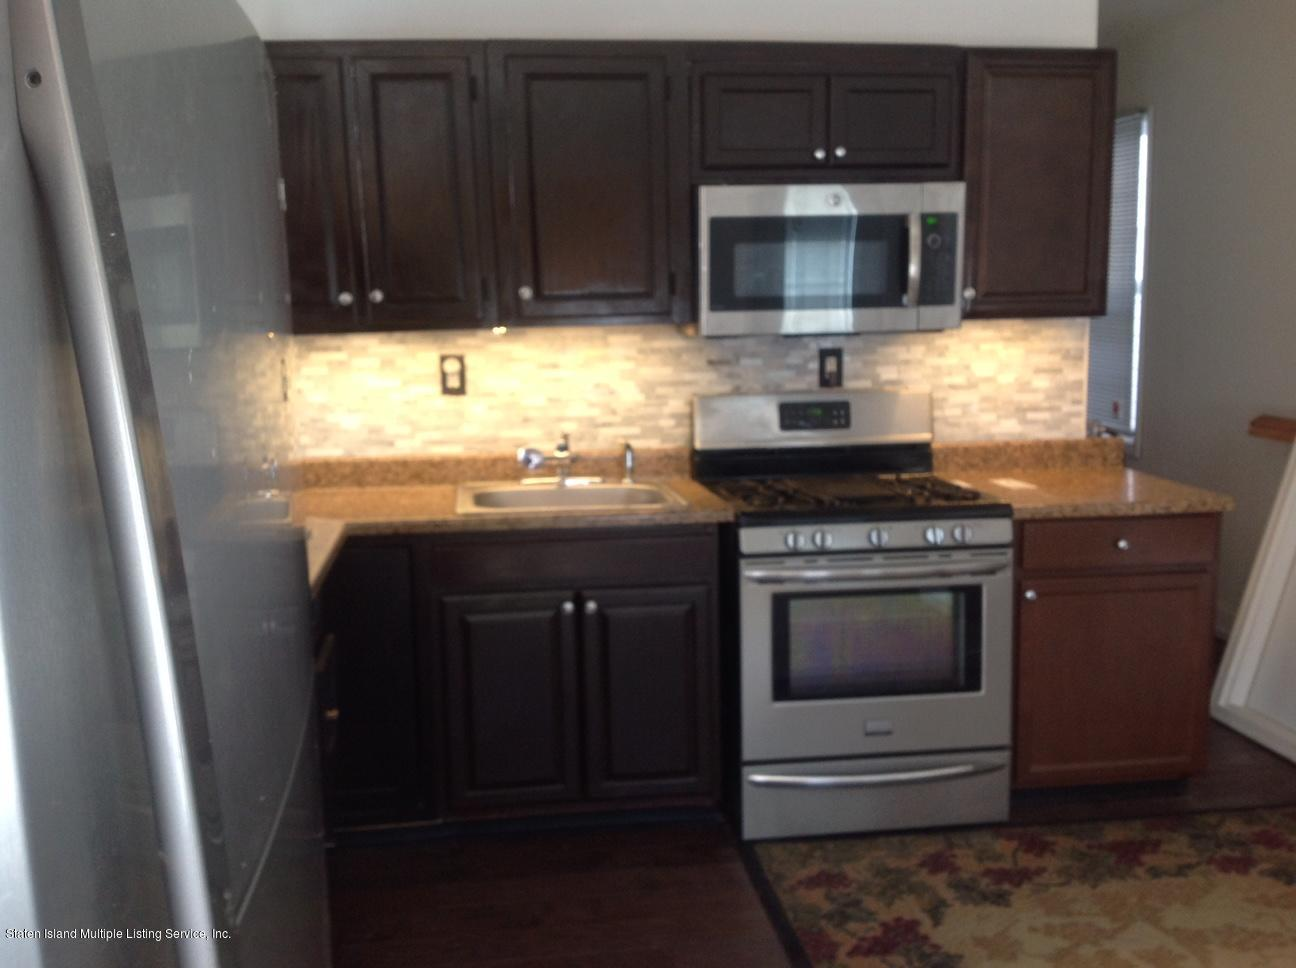 Single Family - Detached 55 Center Place  Staten Island, NY 10306, MLS-1126948-7